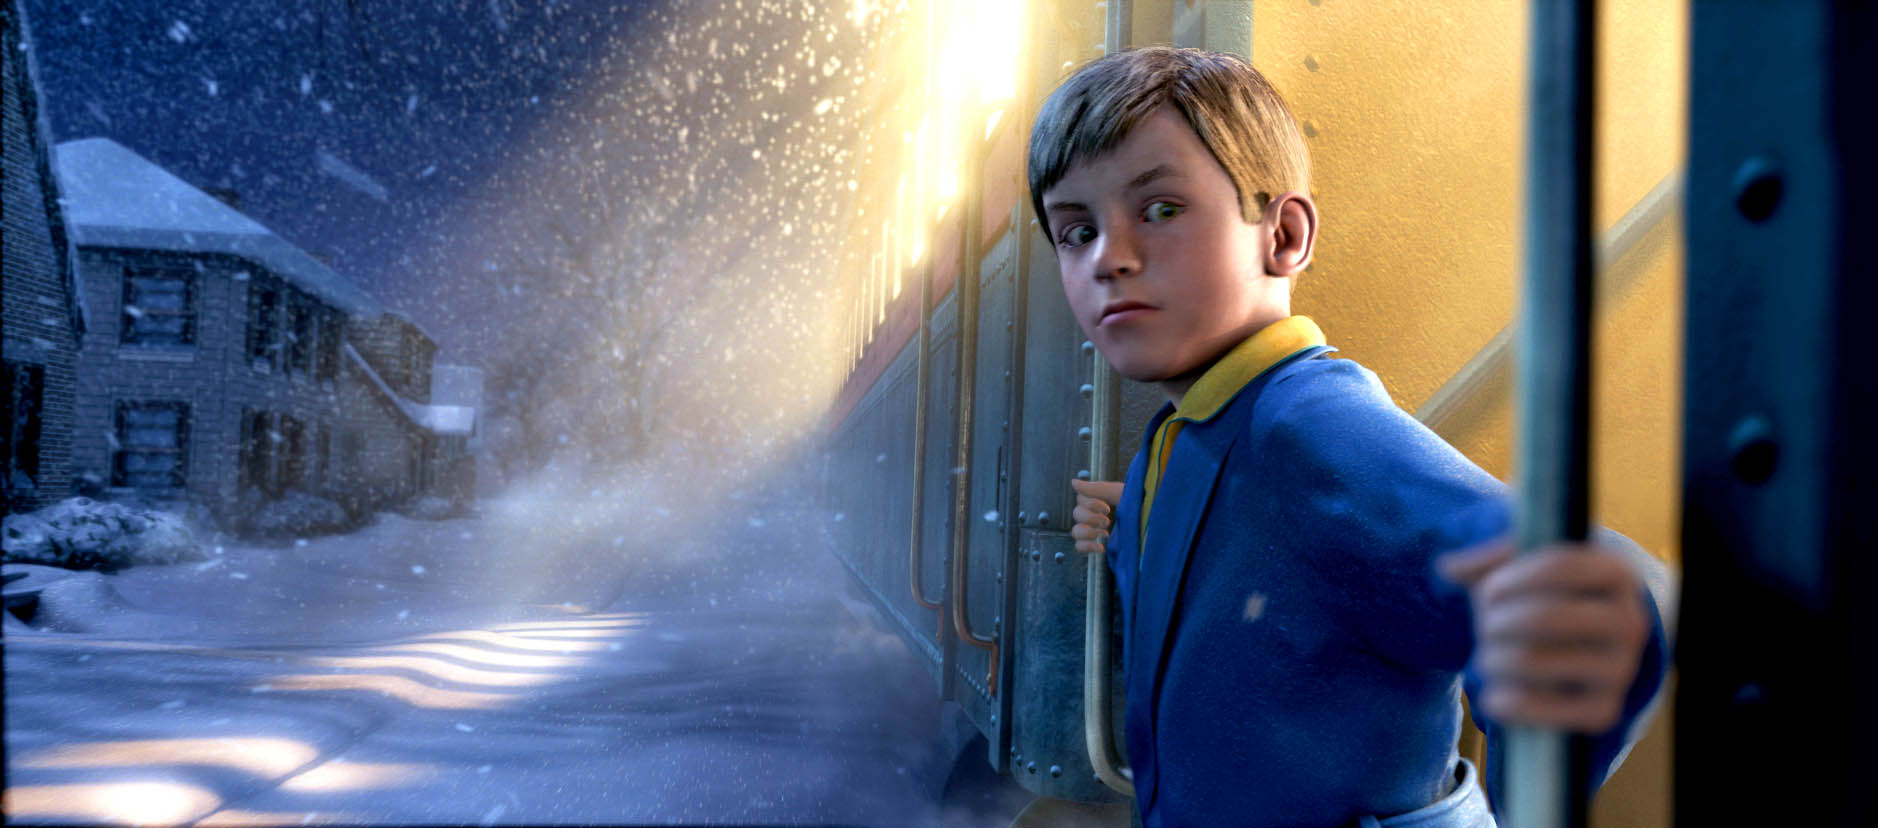 Hero from The Polar Express in IMAX 3D